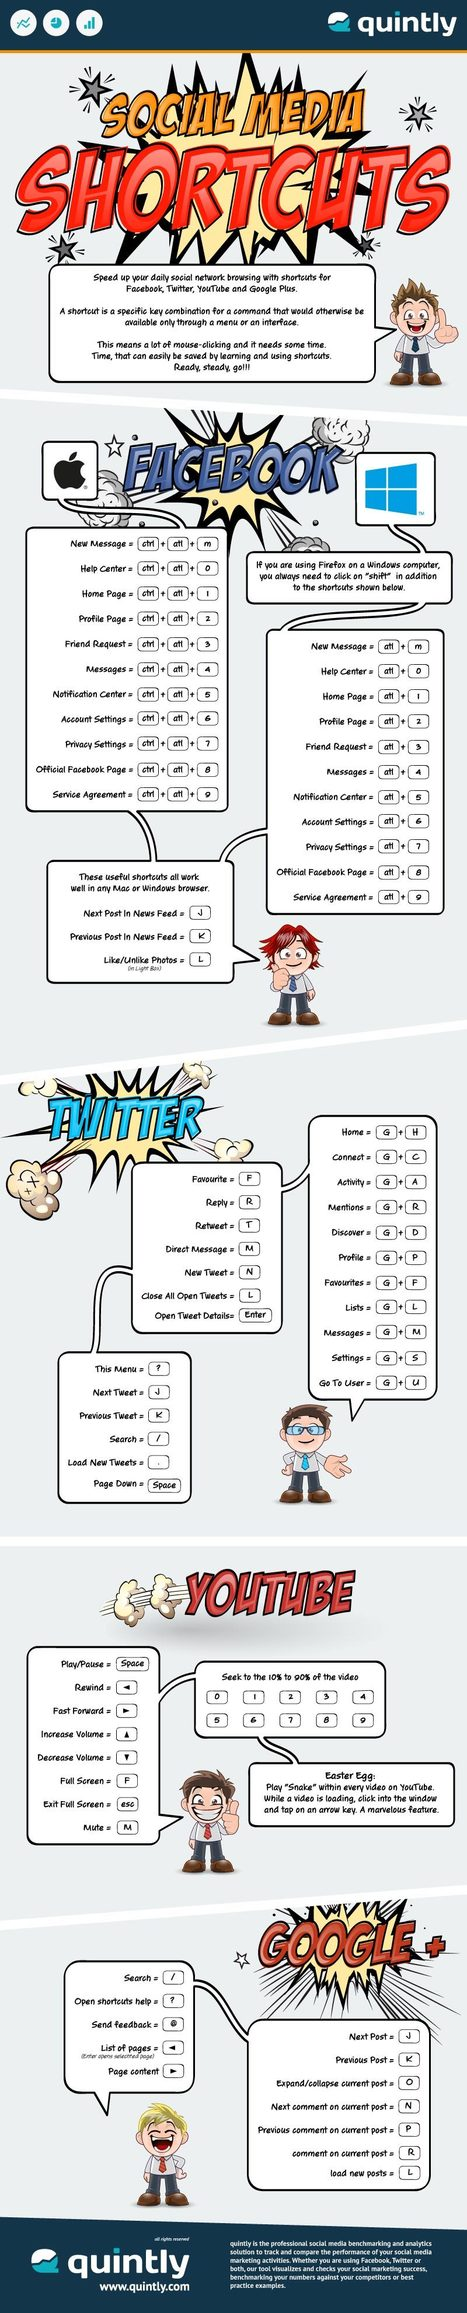 Infographic: Keyboard shortcuts for Facebook, Twitter, YouTube and G+ | Cheeky Marketing | Scoop.it